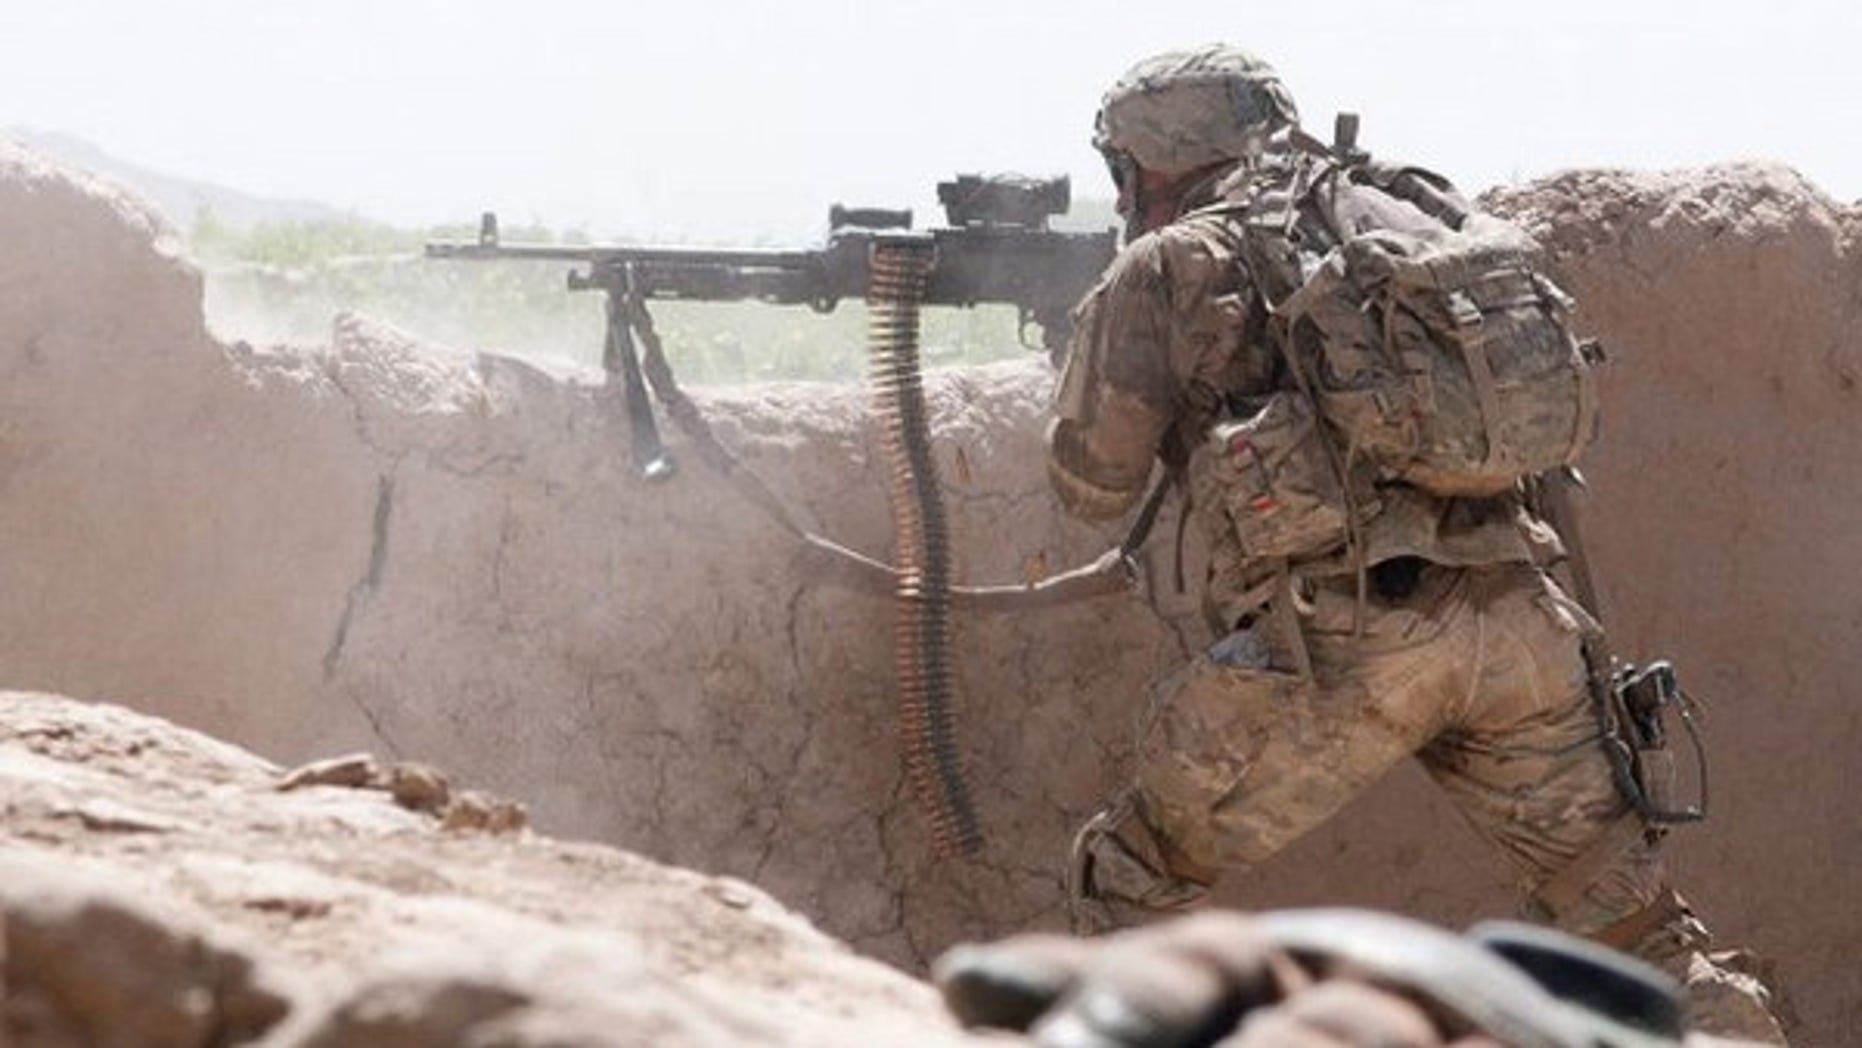 A paratrooper with the 82nd Airborne Division's 1st Brigade Combat Team fires an M240B medium machine gun at insurgent forces in southern Ghazni Province, Afghanistan on June 15, 2012.